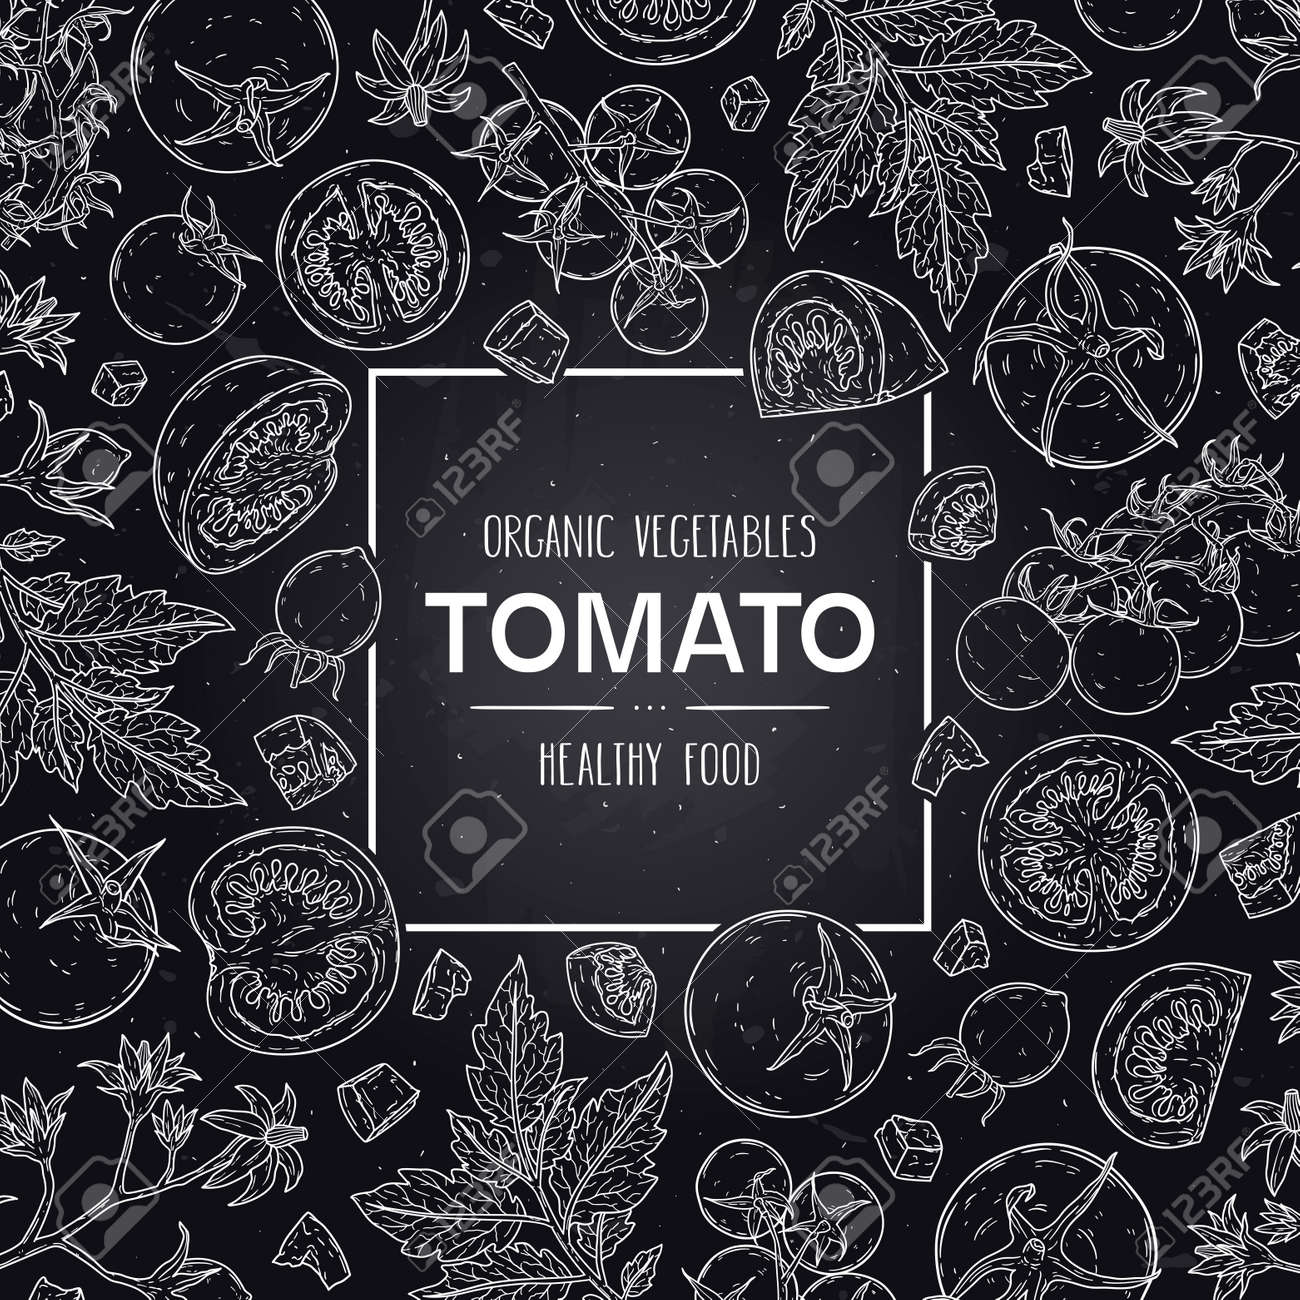 Vector hand drawn frame with organic tomatoes, slices, half, flower, branch with leaves and cherry tomatoes. Healthy doodle sketch illustration in chalkboard style. - 168597399